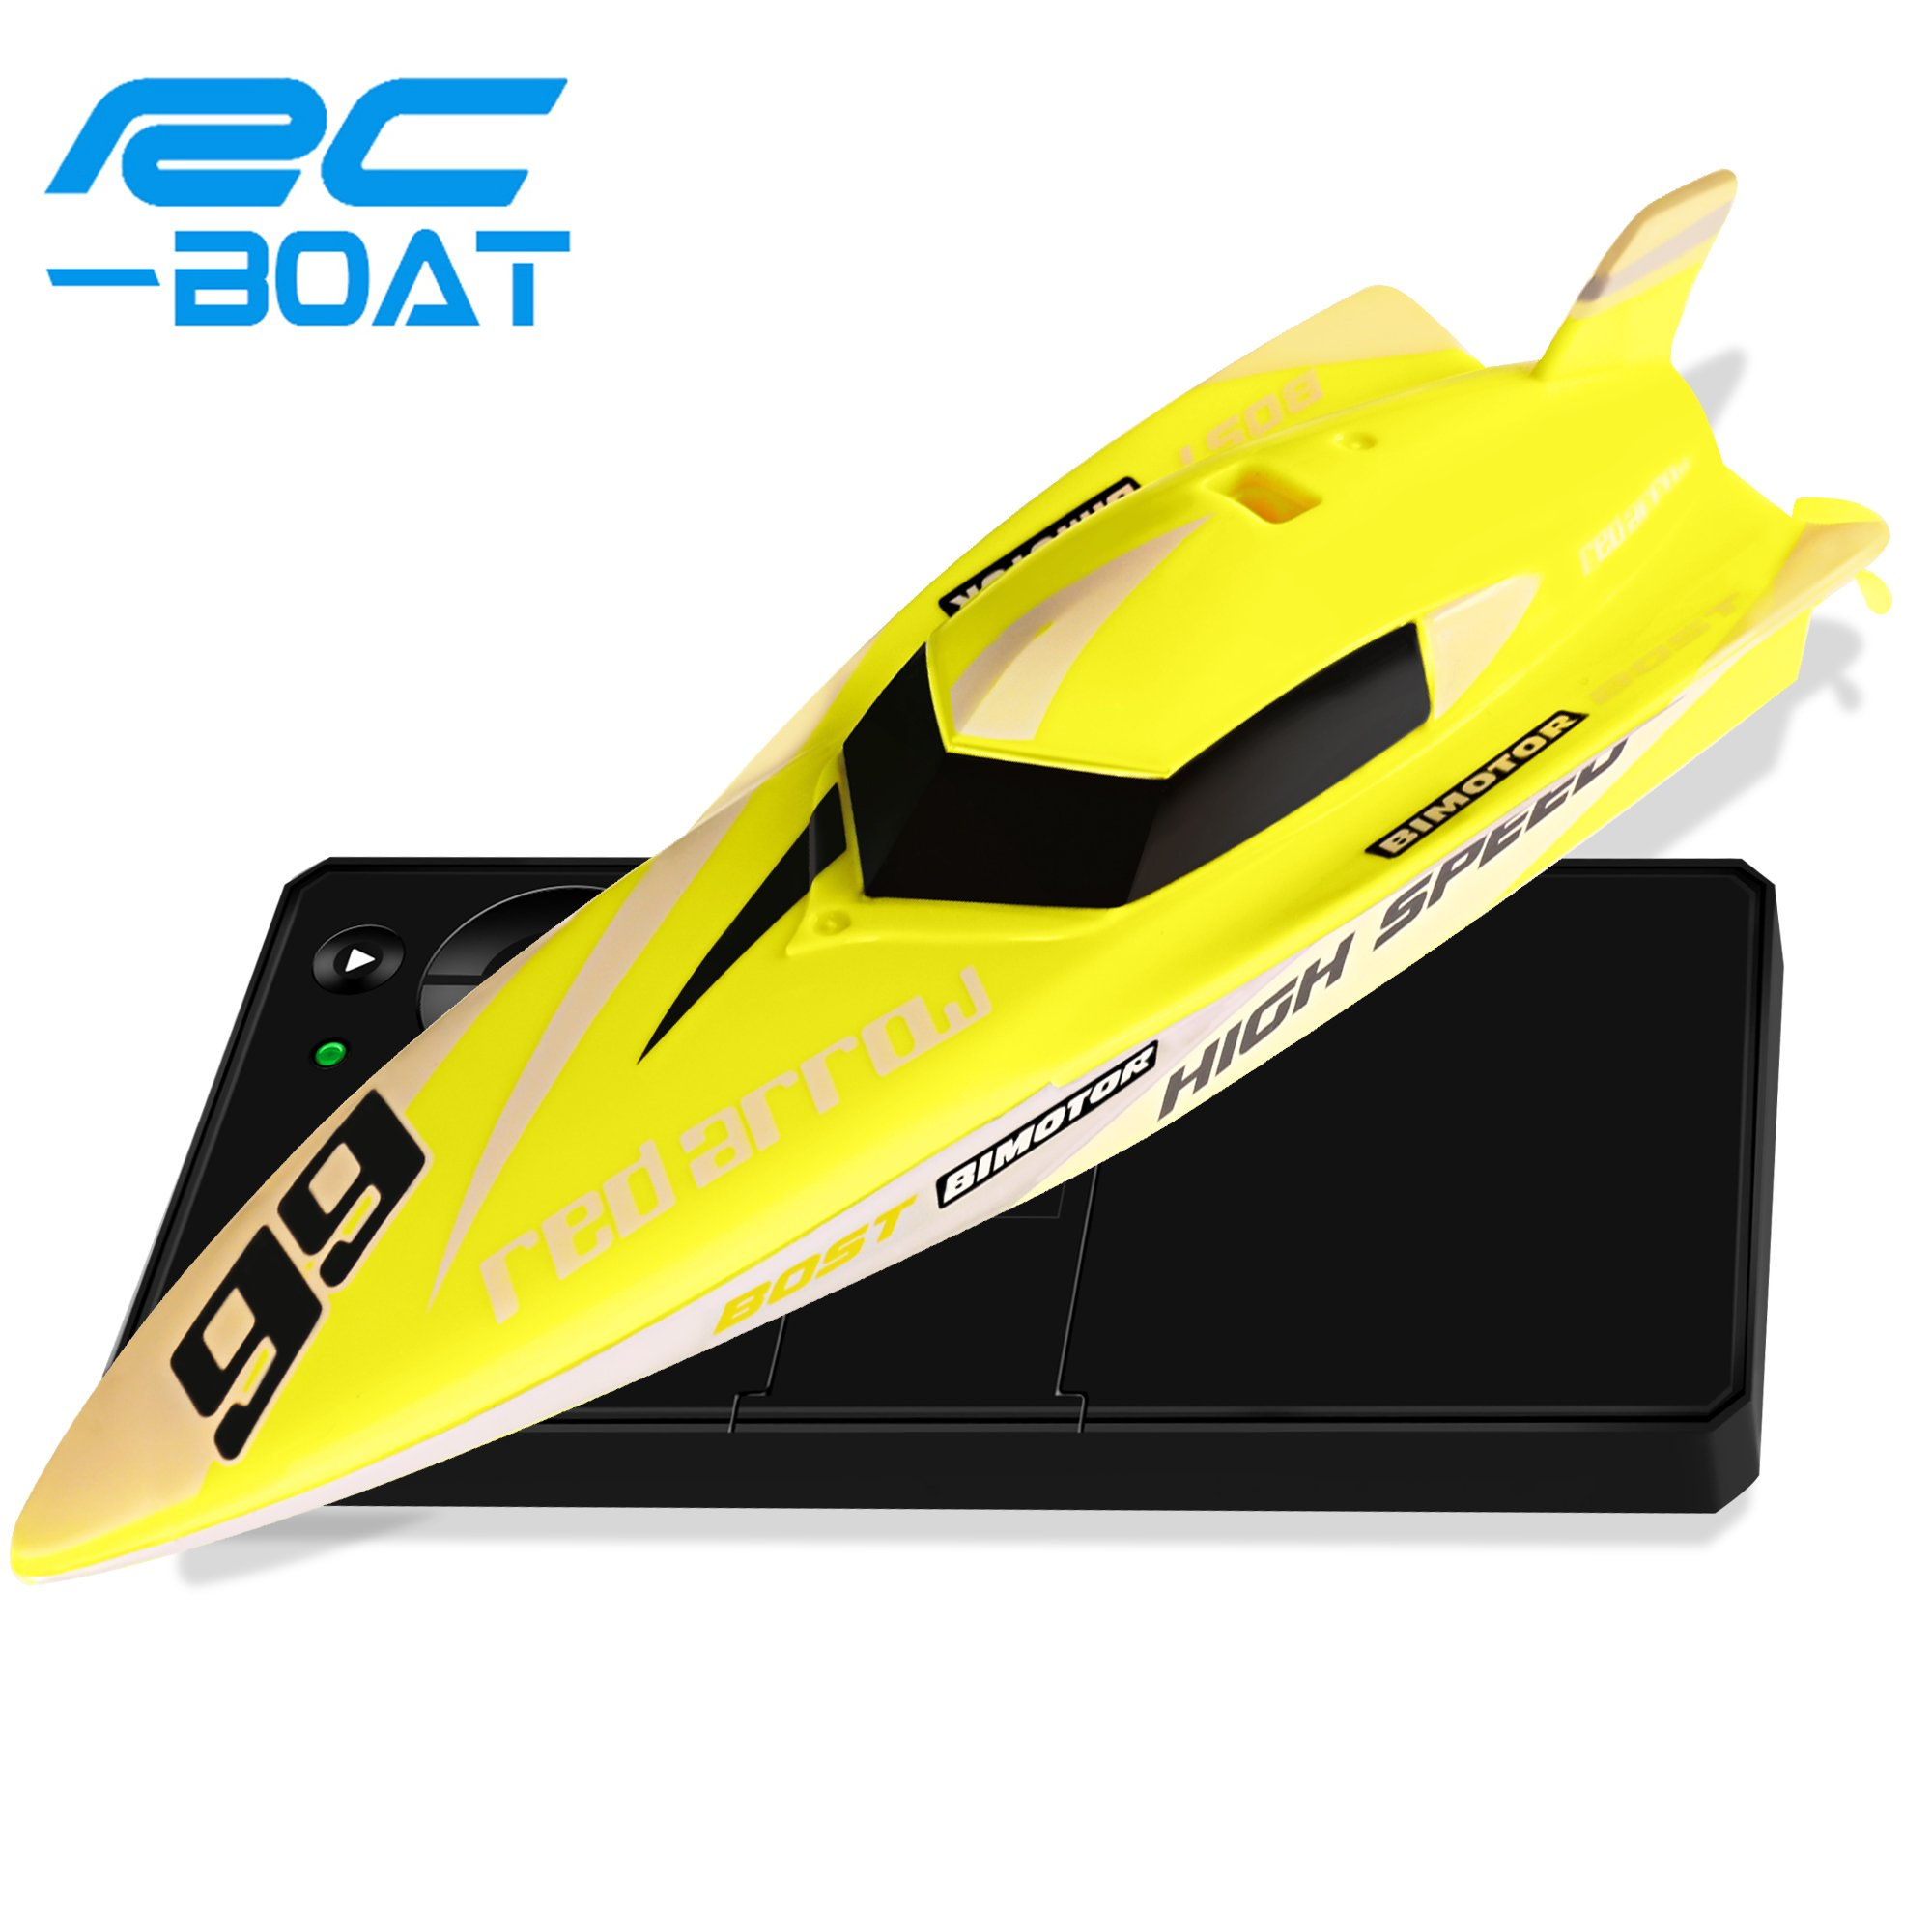 RC Boat Toys, HQQN Remote Control Boat for Pools and Lakes, 2.4GHz 4 Channels RC Speed Boats with Remote Controls with for Adults & Kids